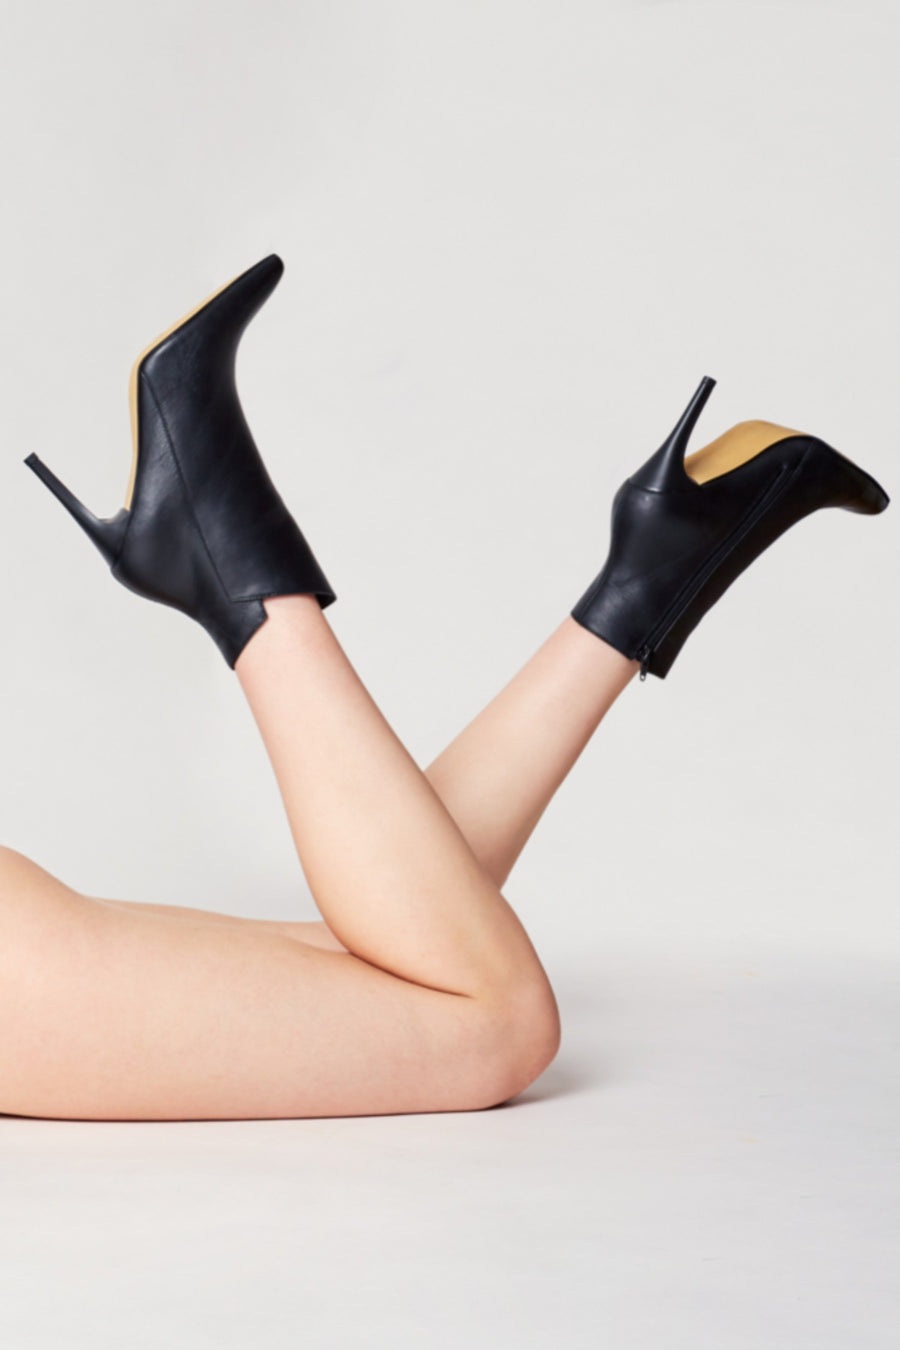 Radiance - leather booties - STIVALI